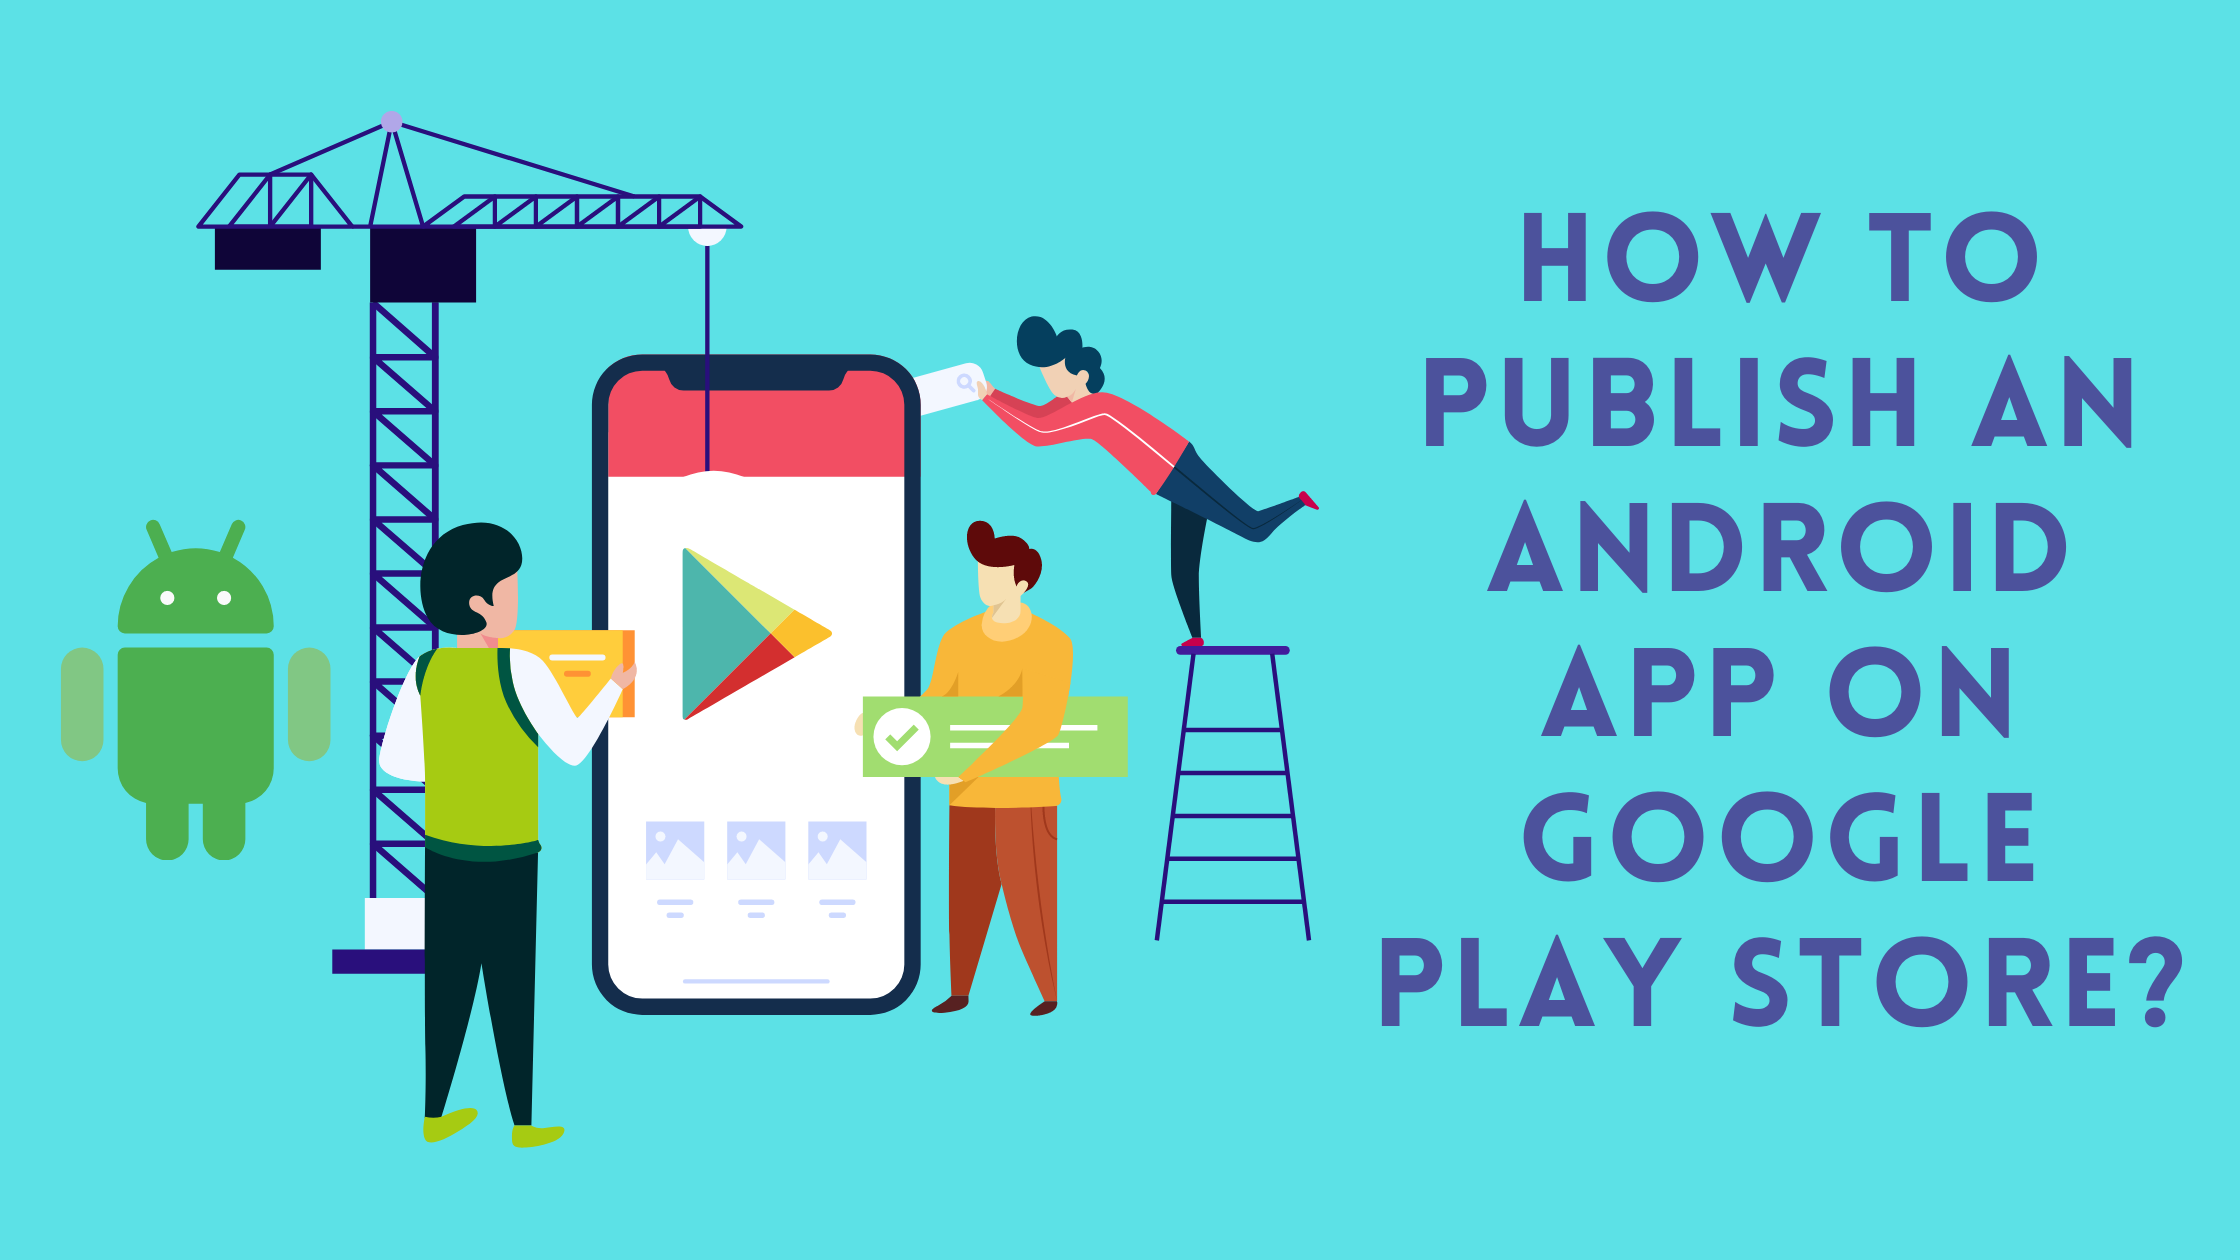 publish-android-app-on-google-play-store